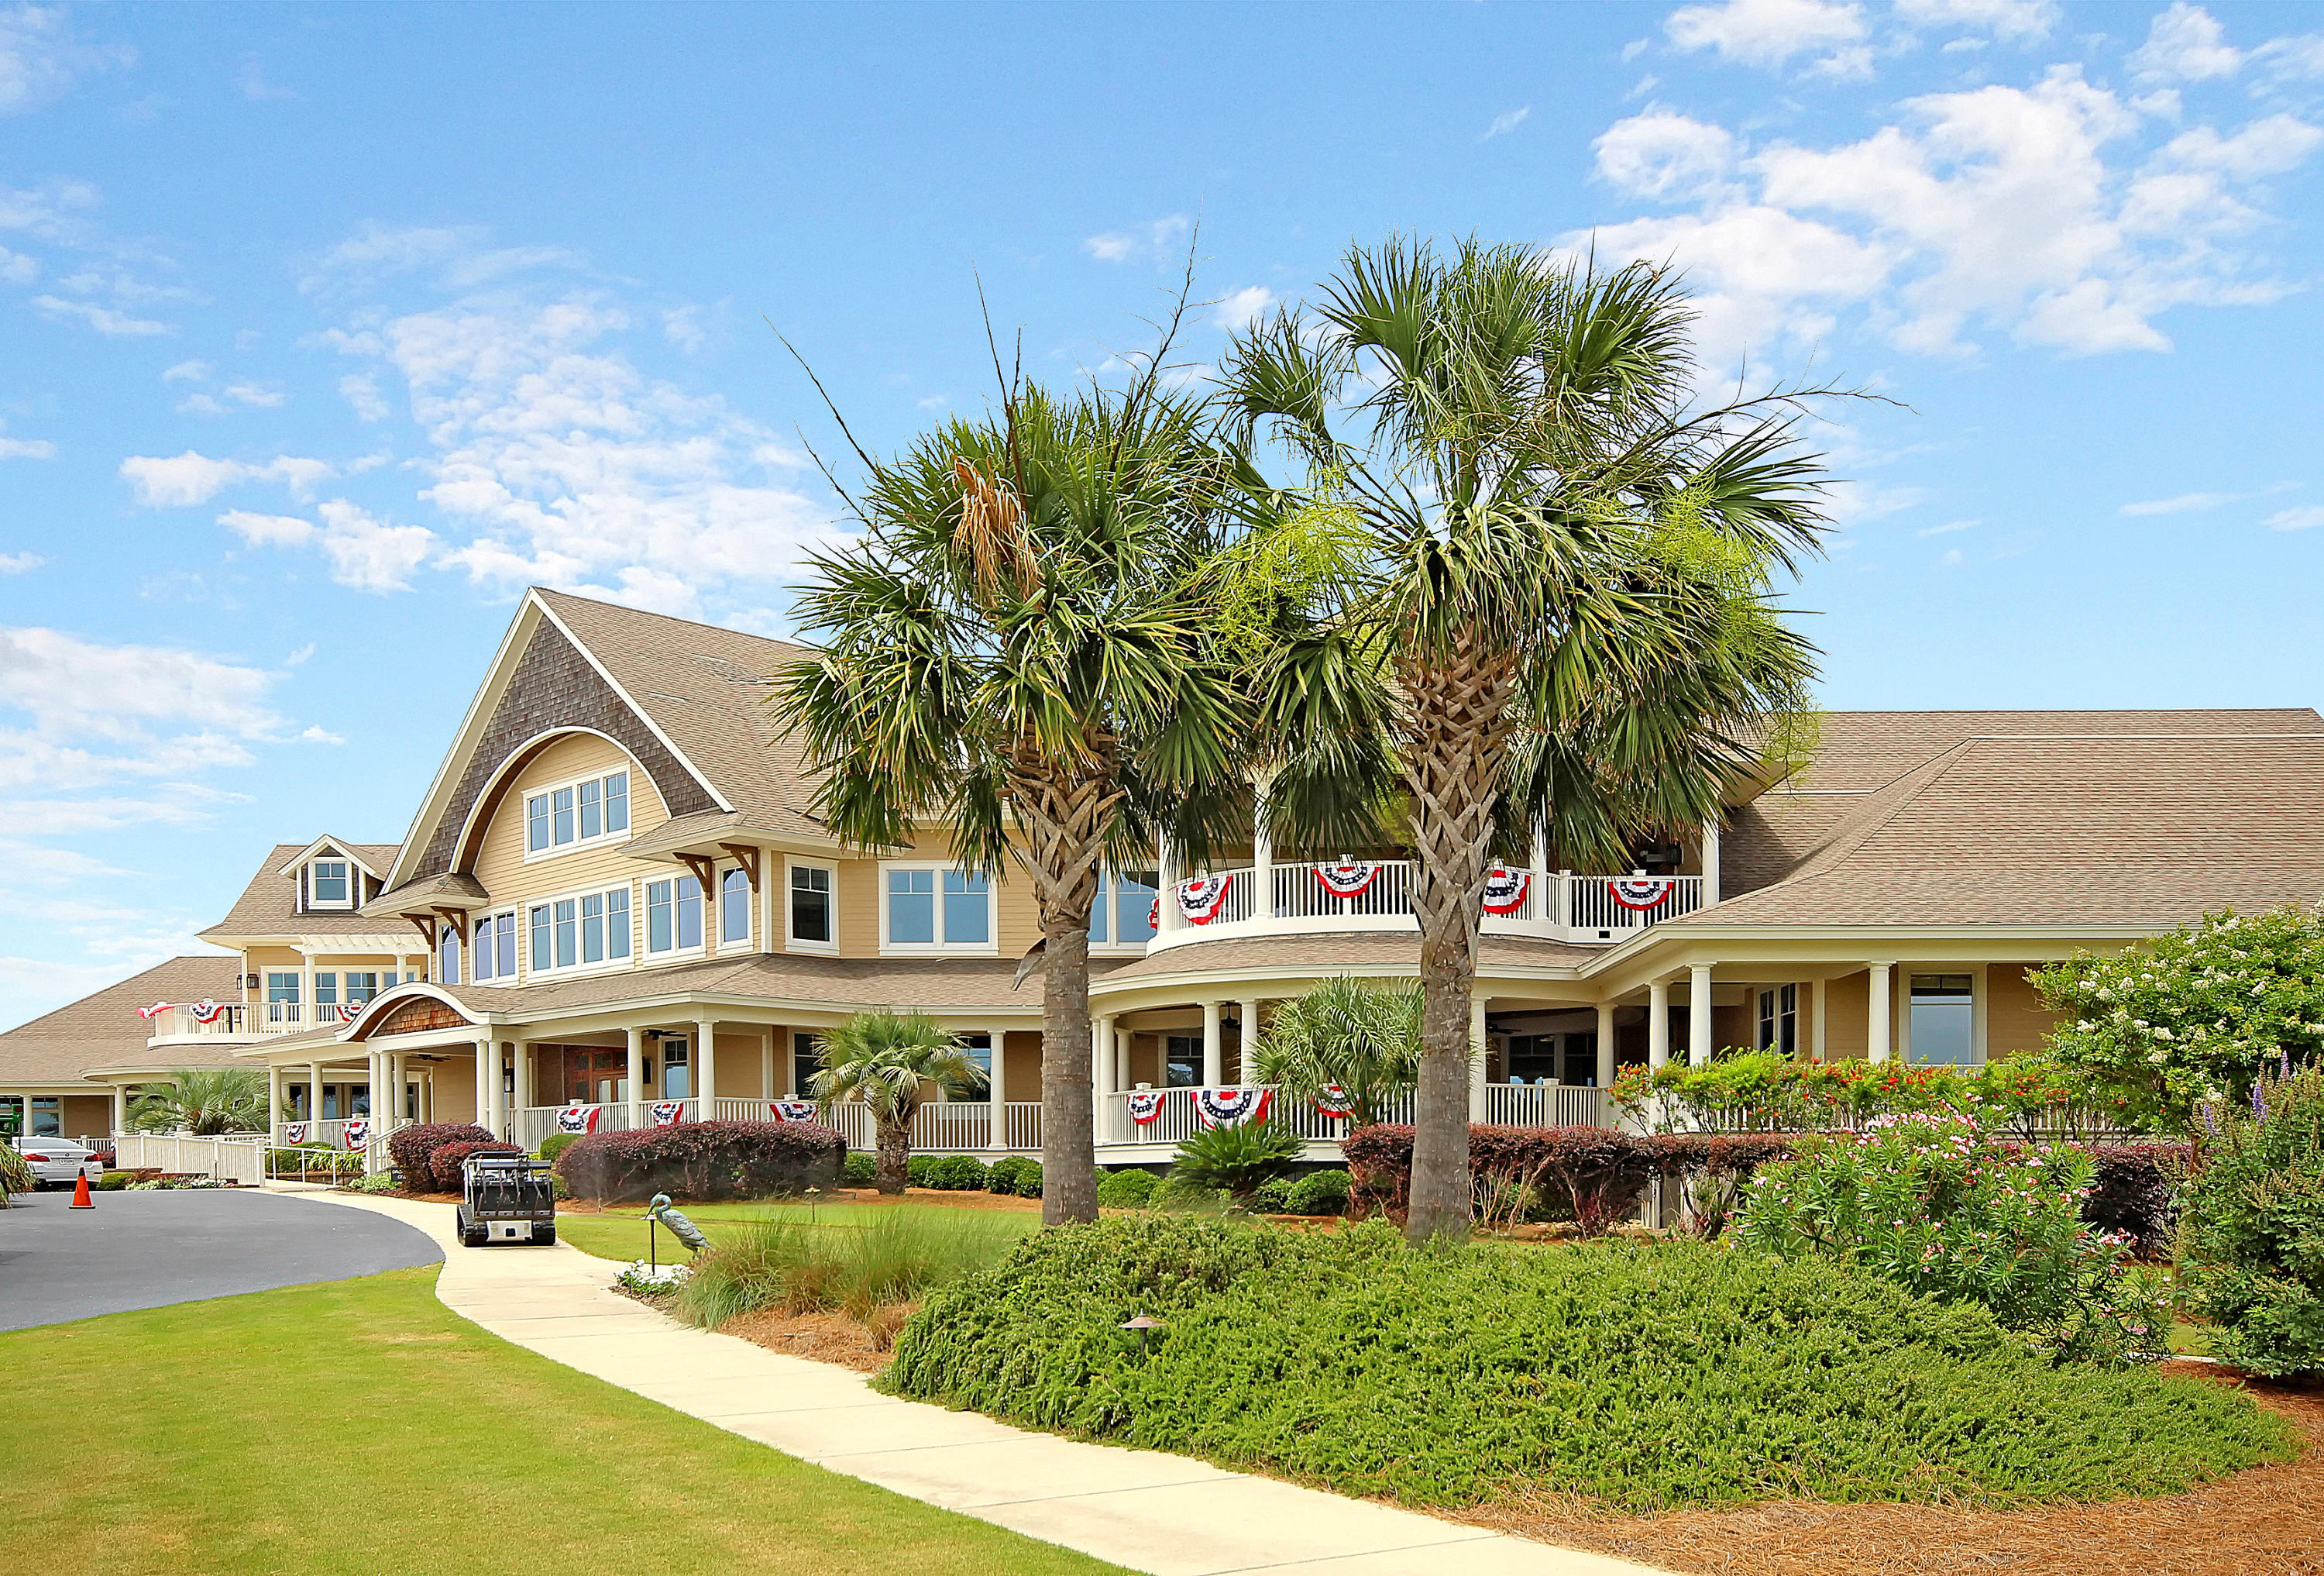 Atrium Villas Homes For Sale - 2912 Atrium Villa, Seabrook Island, SC - 30